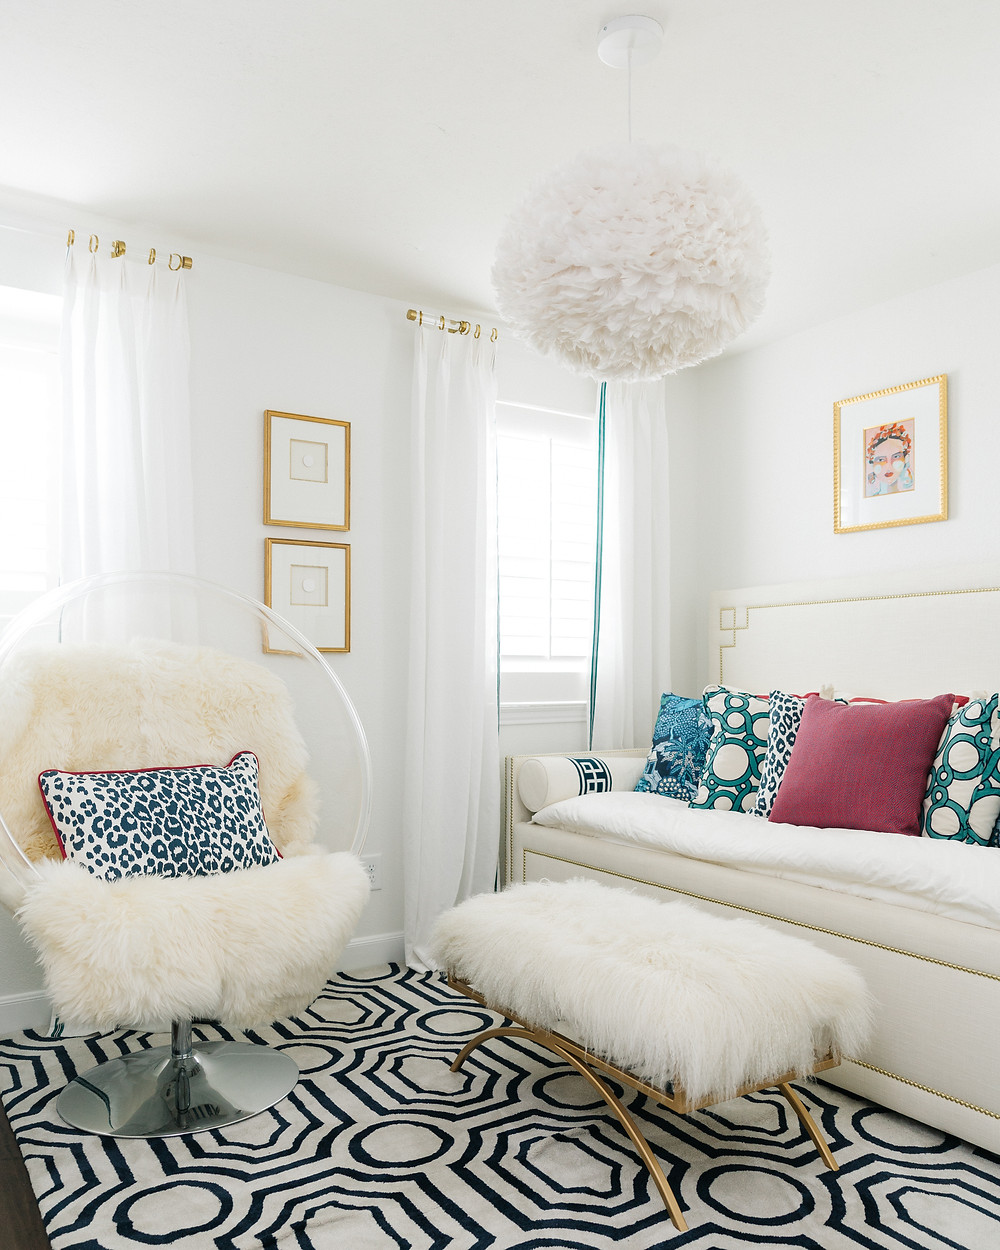 Guest bedroom with white walls and bold accents